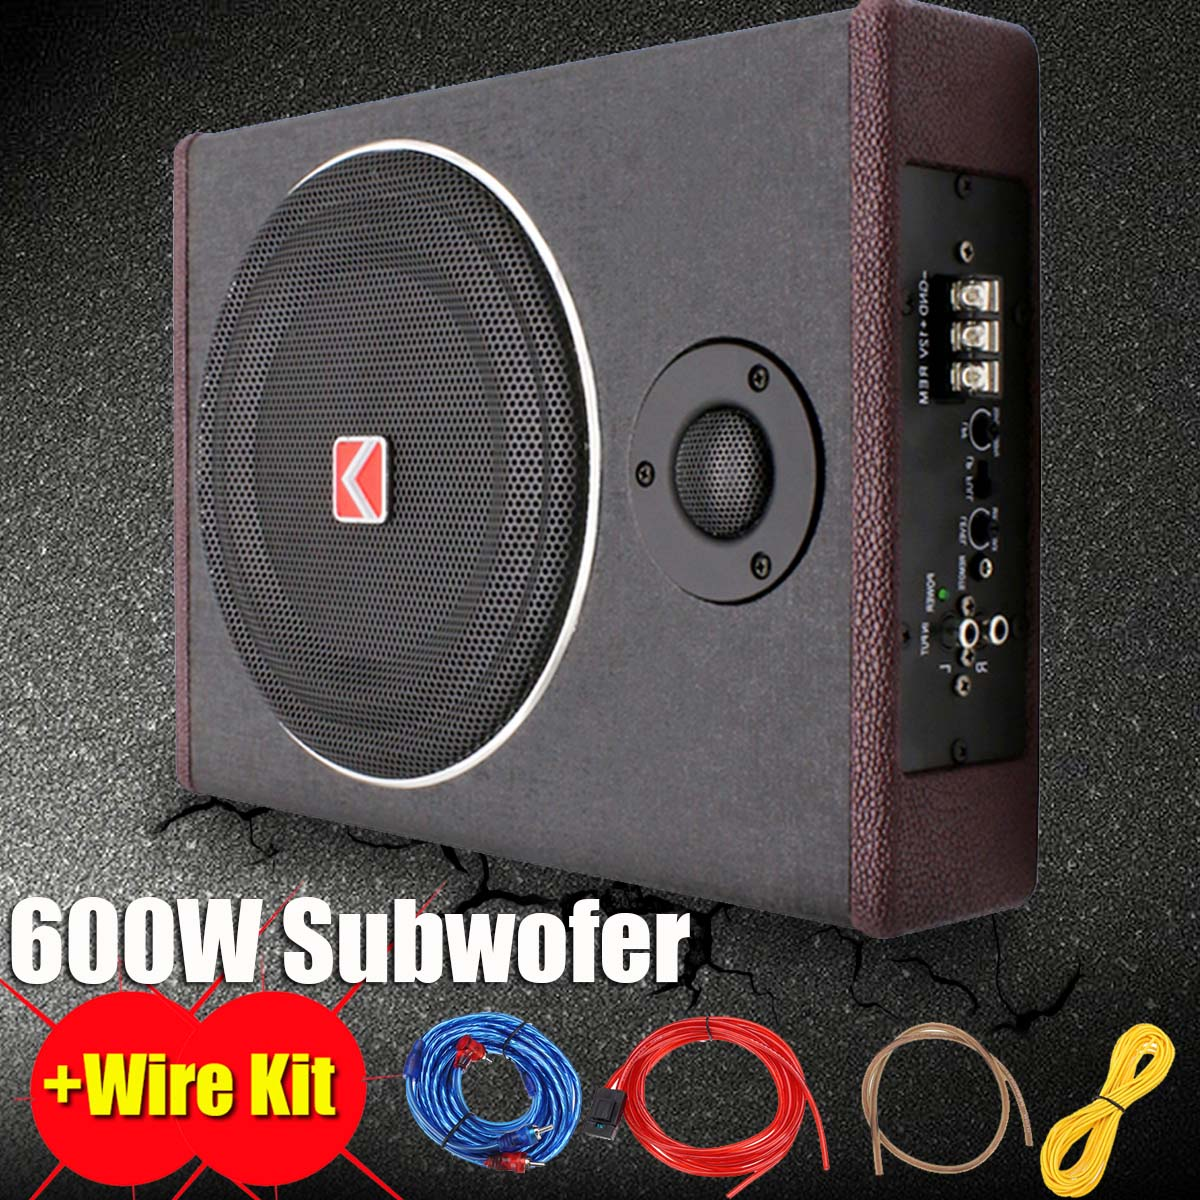 8Inch 600W Active Under Seat Car Subwoofer Speaker Car Audio Speaker Stereo Power Amplifier Subwoofer  Enclosed Subwoofer System8Inch 600W Active Under Seat Car Subwoofer Speaker Car Audio Speaker Stereo Power Amplifier Subwoofer  Enclosed Subwoofer System